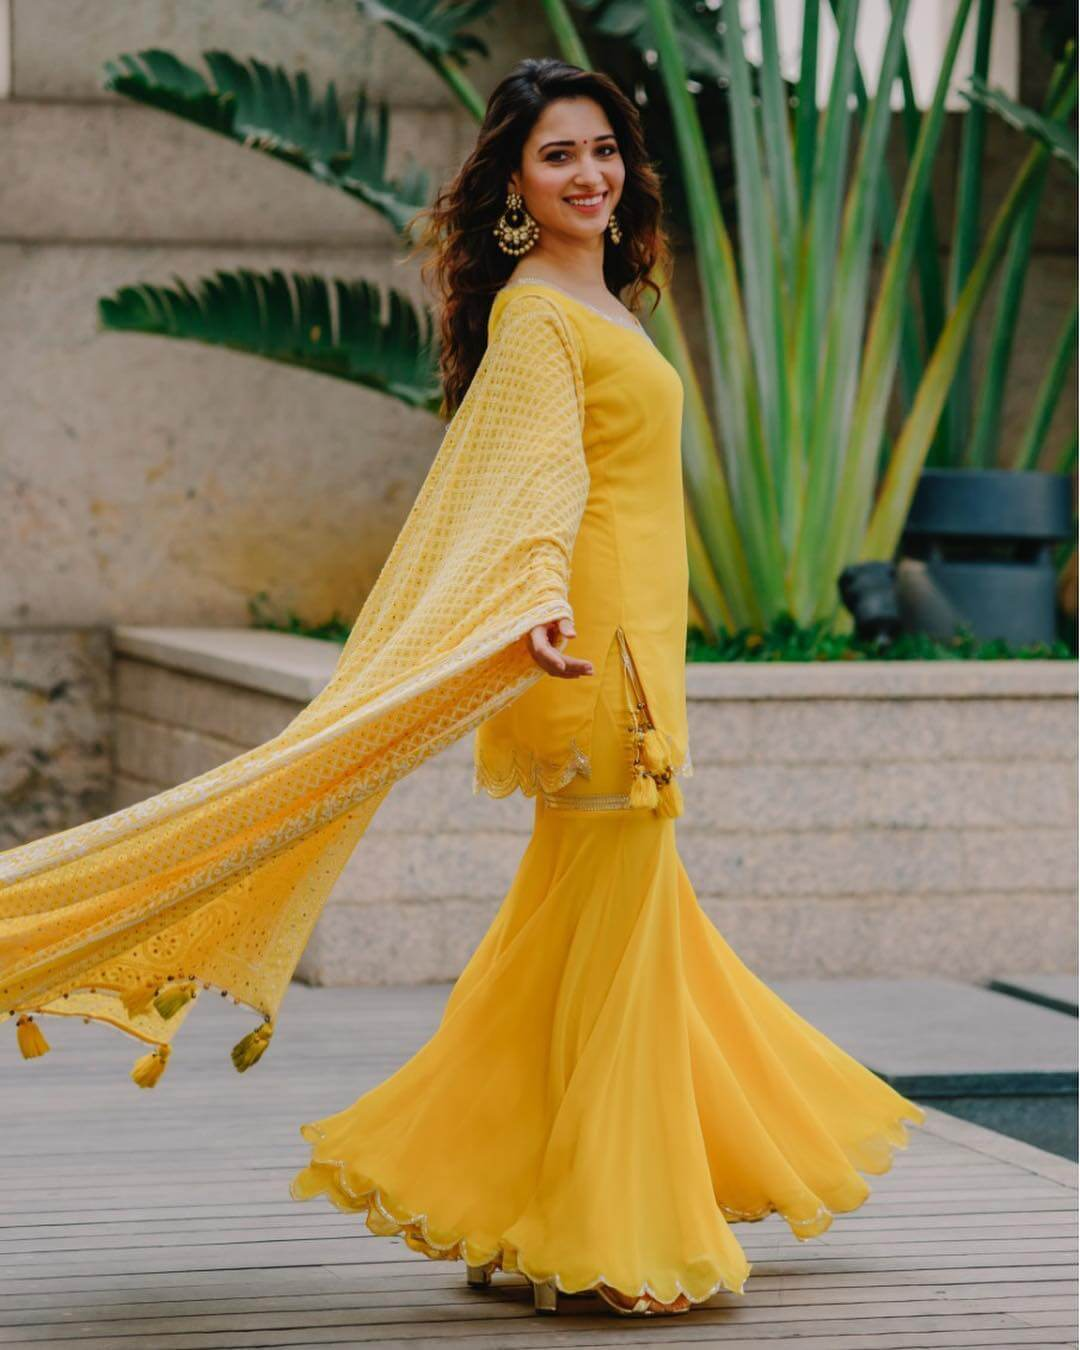 Tamannaah Bhatia Pastel Traditional Yellow Outfits for Indian Festivals